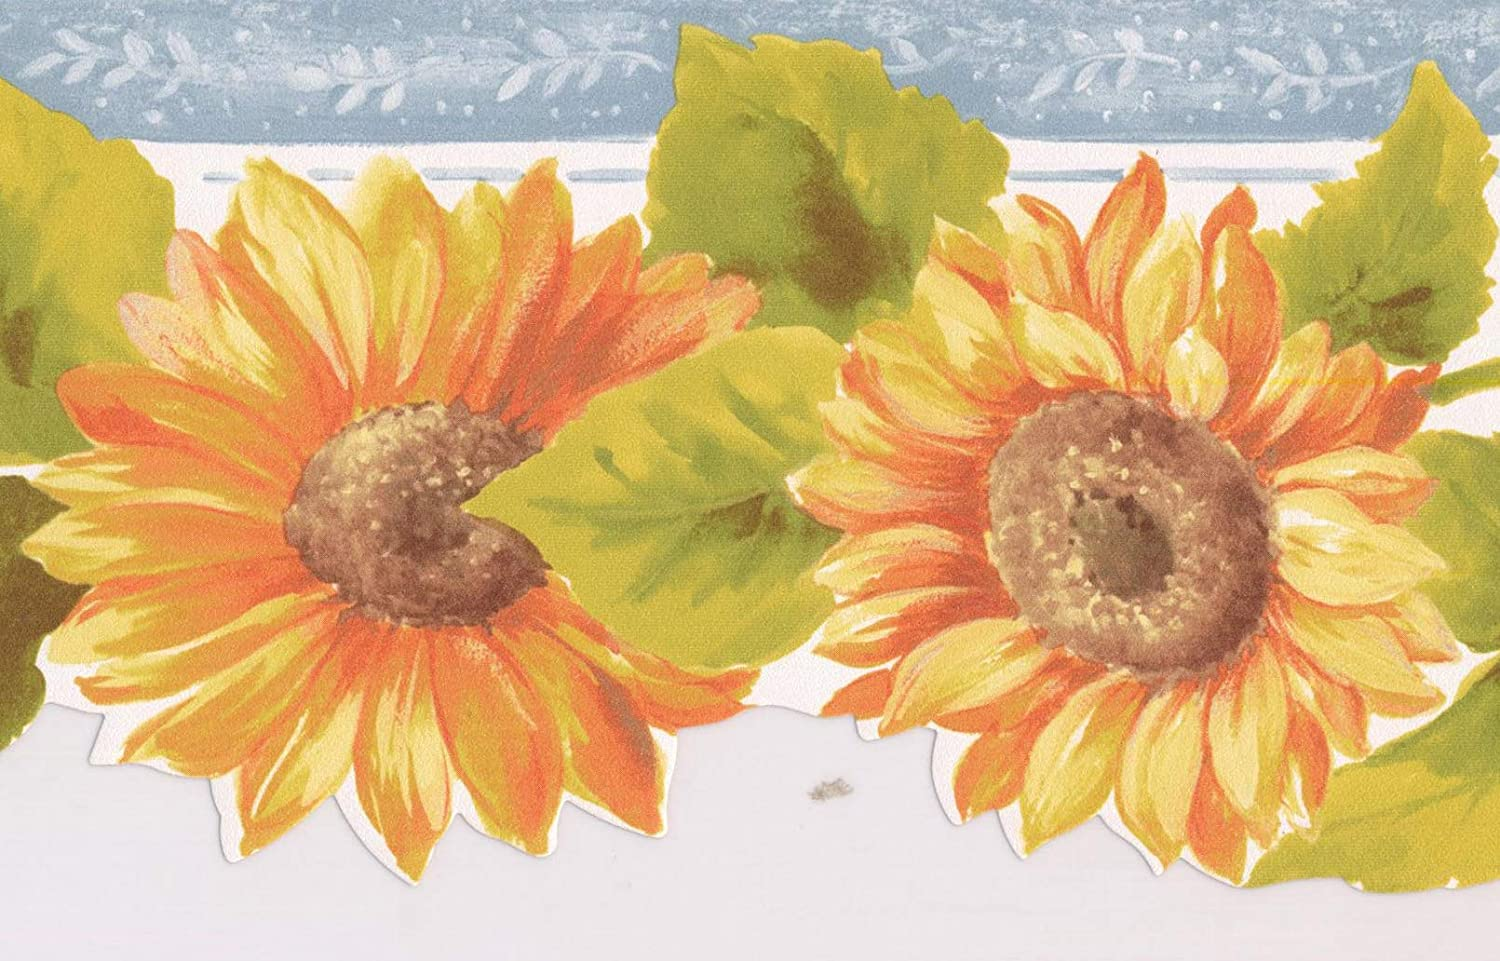 Norwall Prepasted Wallpaper Border Orange Yellow Sunflowers Silver Grey Trim Scalloped Floral Wall Border Retro Design Roll 15 Ft X 5 In 5 25 By 5 Yards Amazon Co Uk Kitchen Home